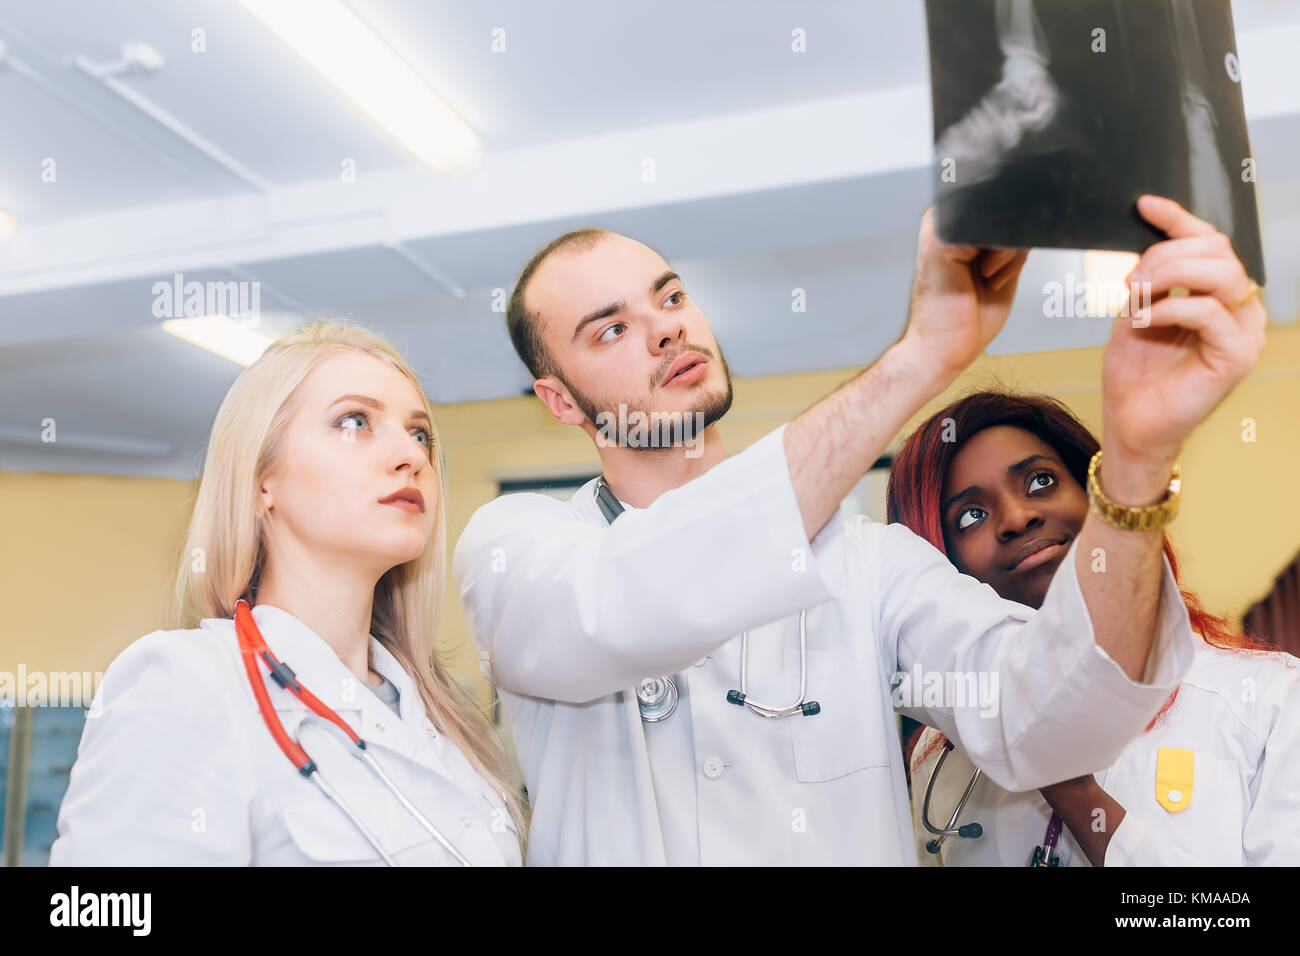 Multiracial team of young doctors looking at x-ray healthcare, medical and radiology concept - Stock Image